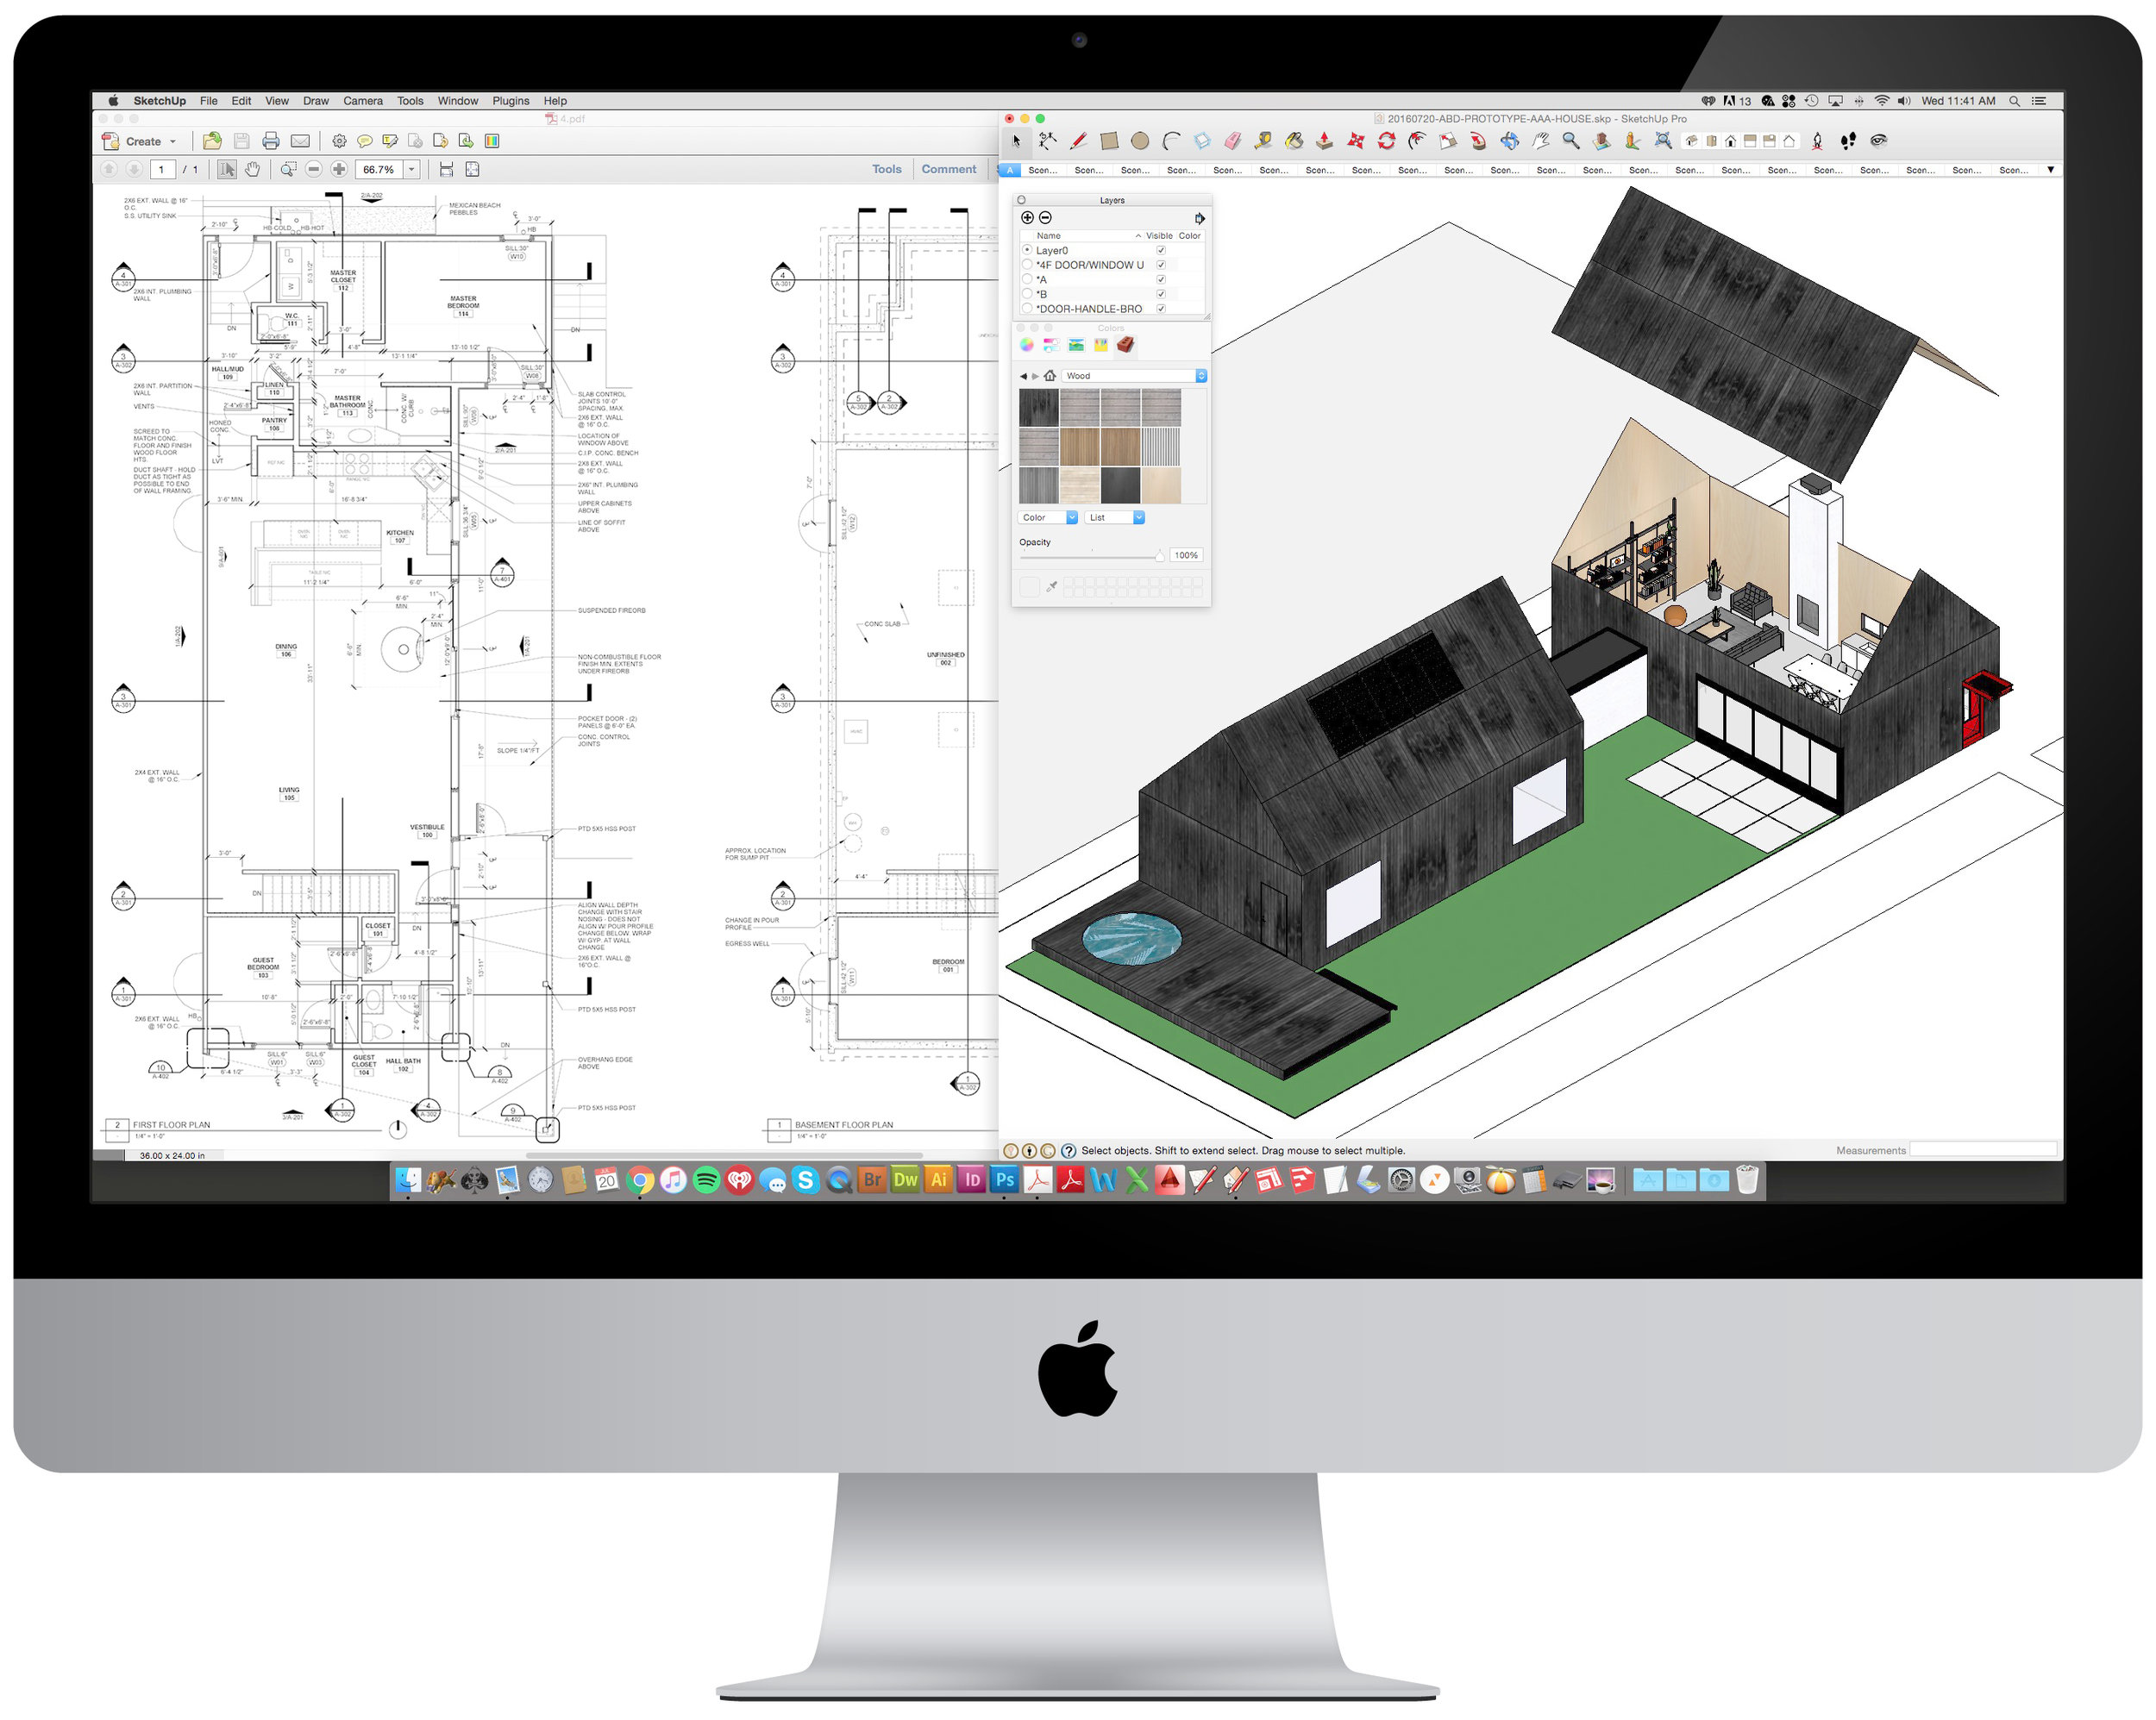 Drafting & 3D Visualization - As Designers & Fabricators, we create your project while understanding the building process from start to finish.We offer comprehensive design, detail, and rendering packages, 3D models, and hand-sketches that allow you to experience the materials, spaces, views, and details of your project.